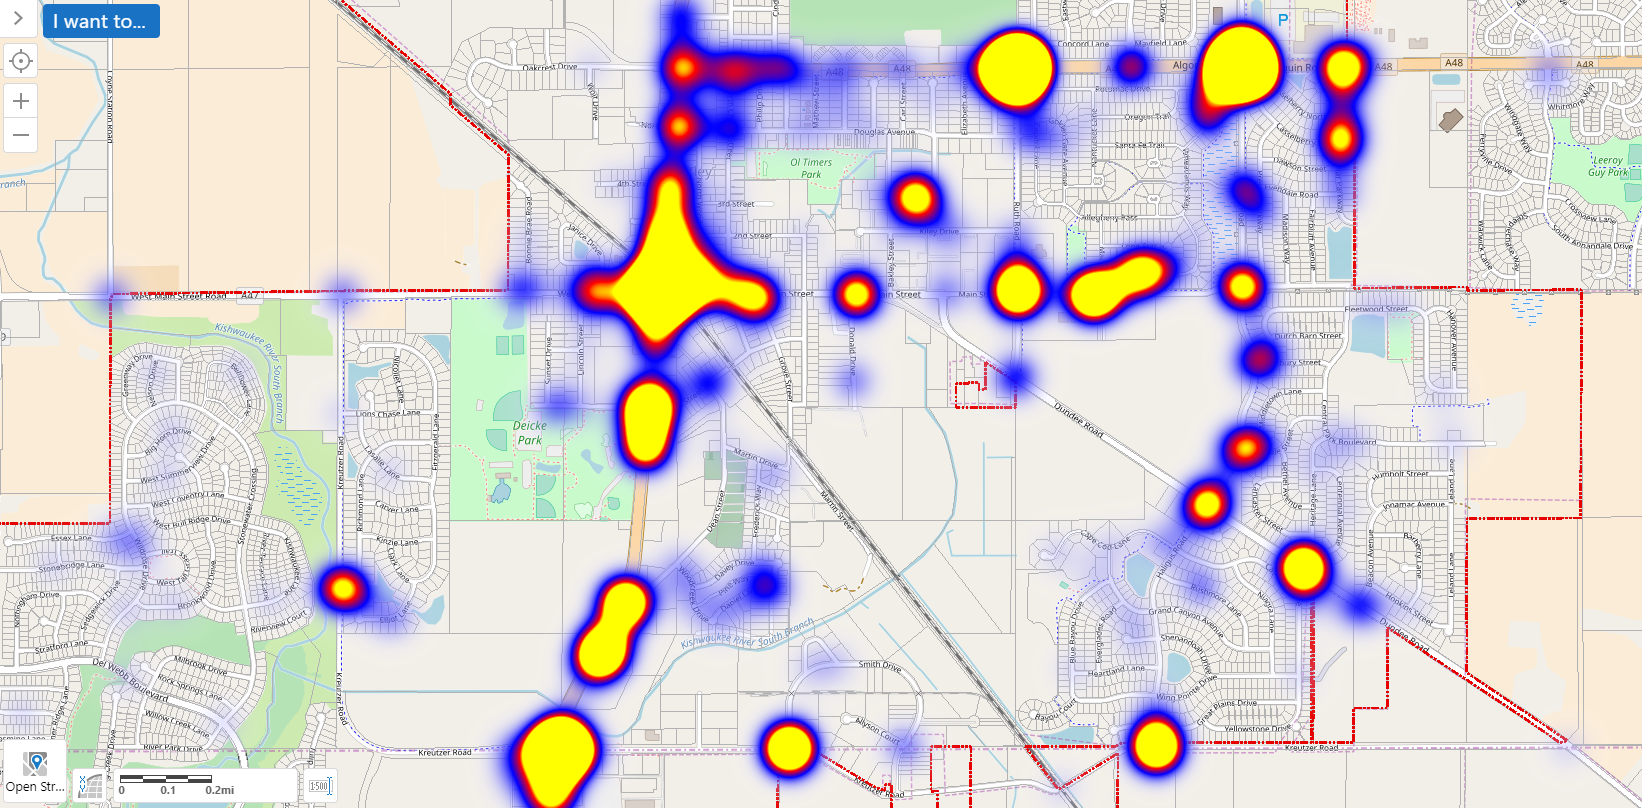 police - incident heat map.PNG